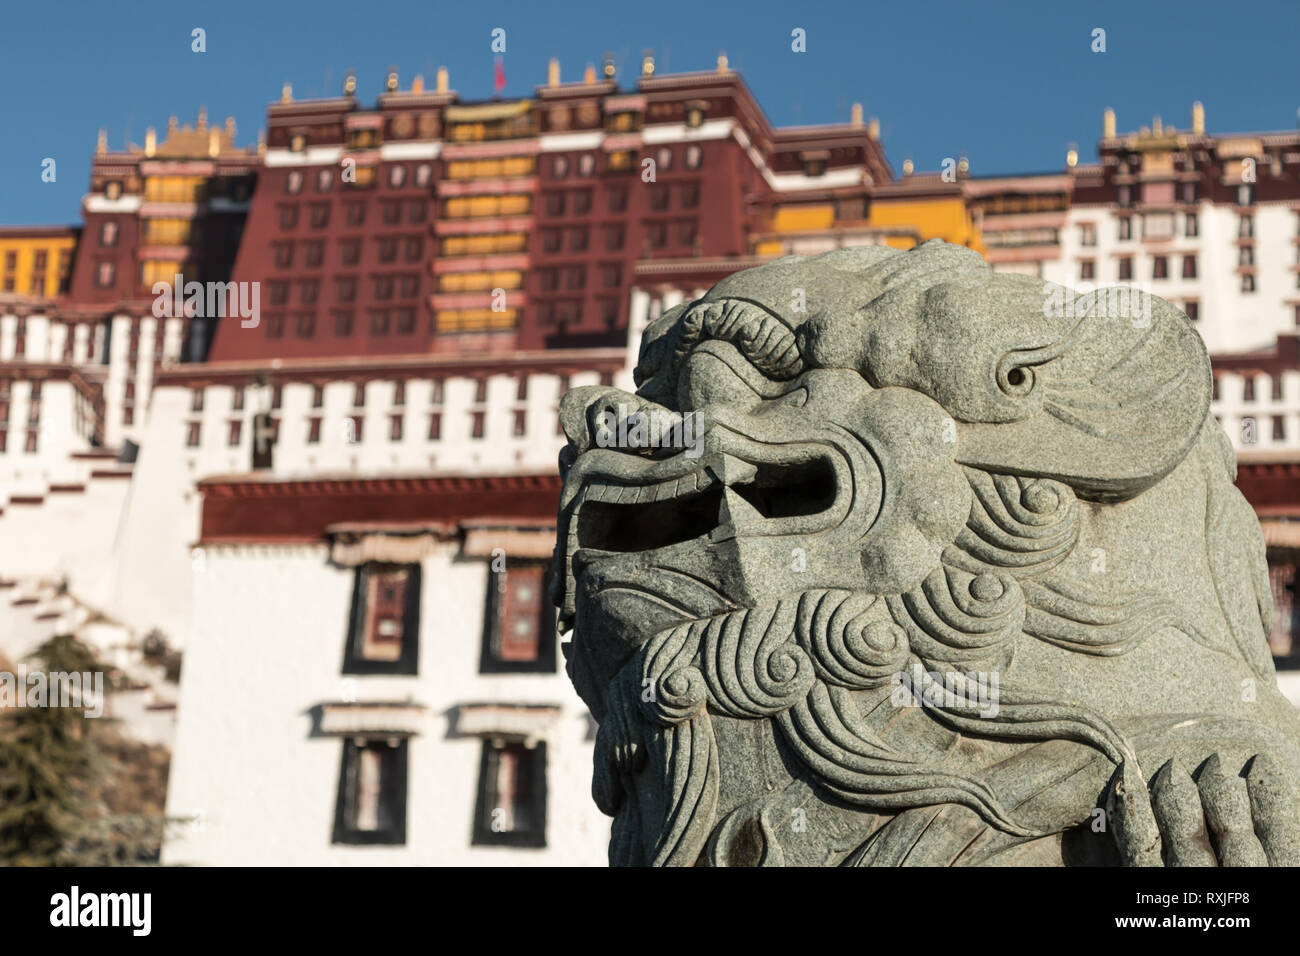 Potala Palace in Lhasa, Tibet - a spectacular palace set on a hillside which was once home to the Dalai Lama and is now a major tourist attraction. - Stock Image